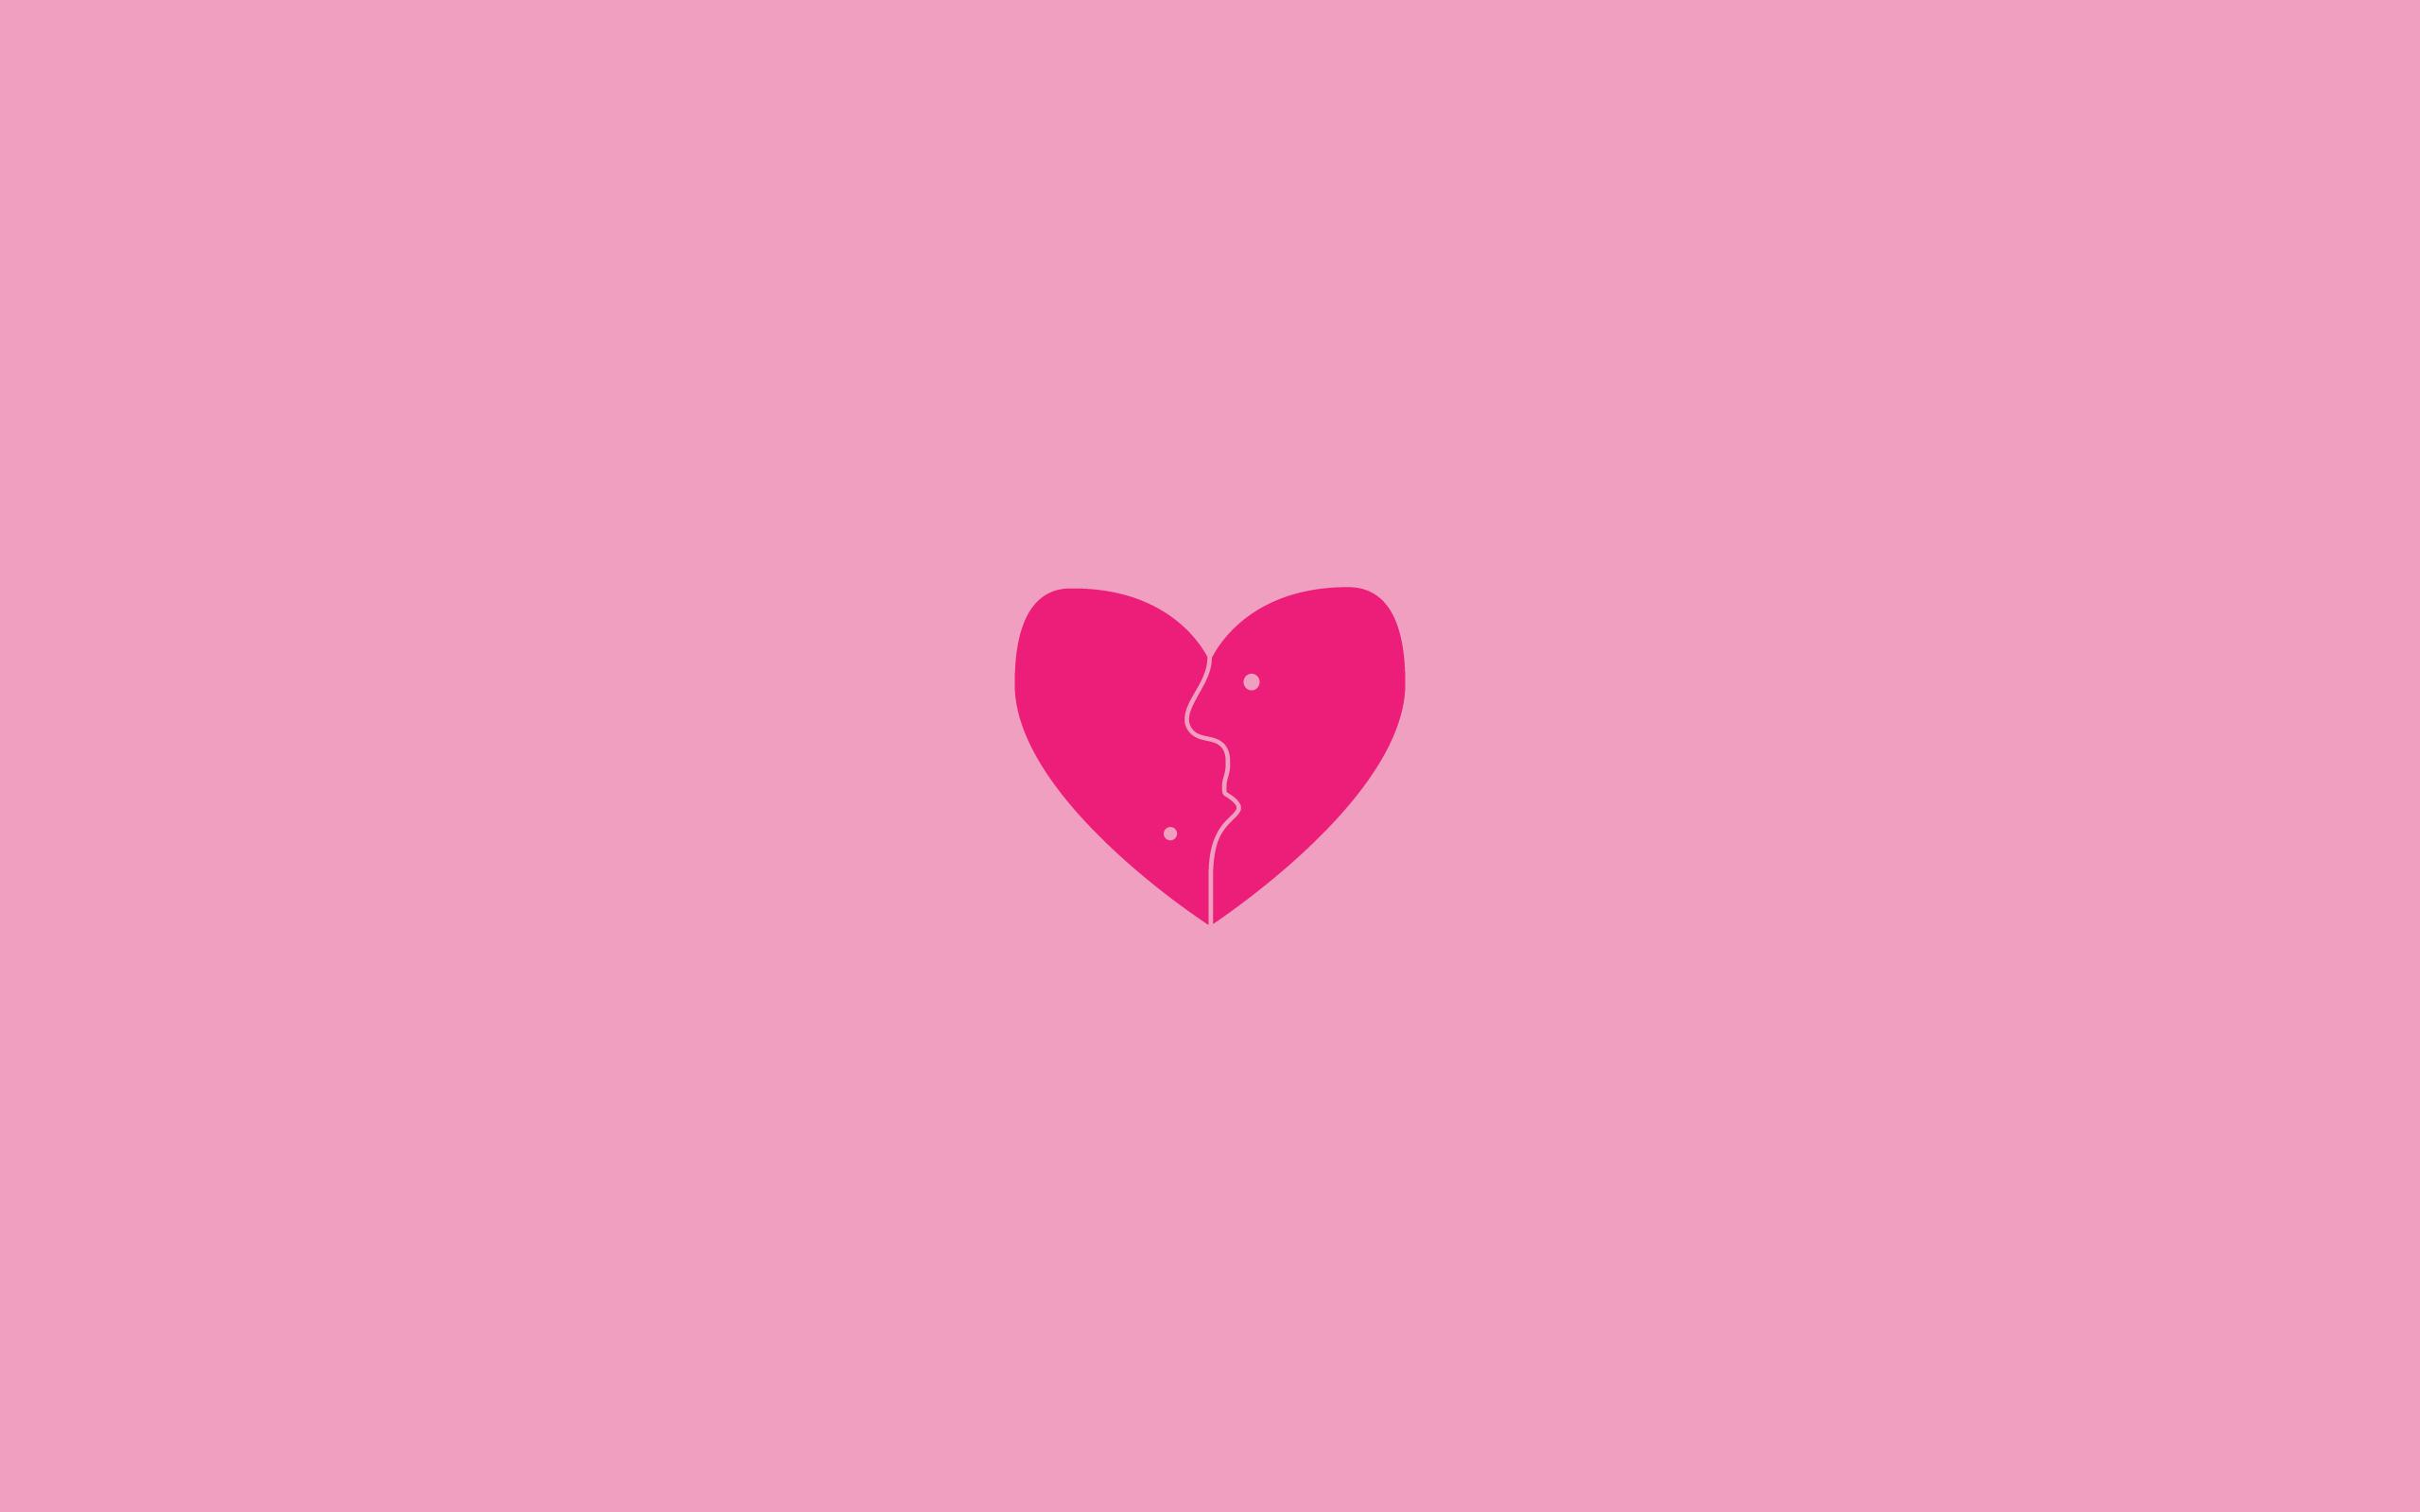 Little Heart Pink Background Wallpapers - 2560x1600 - 69974